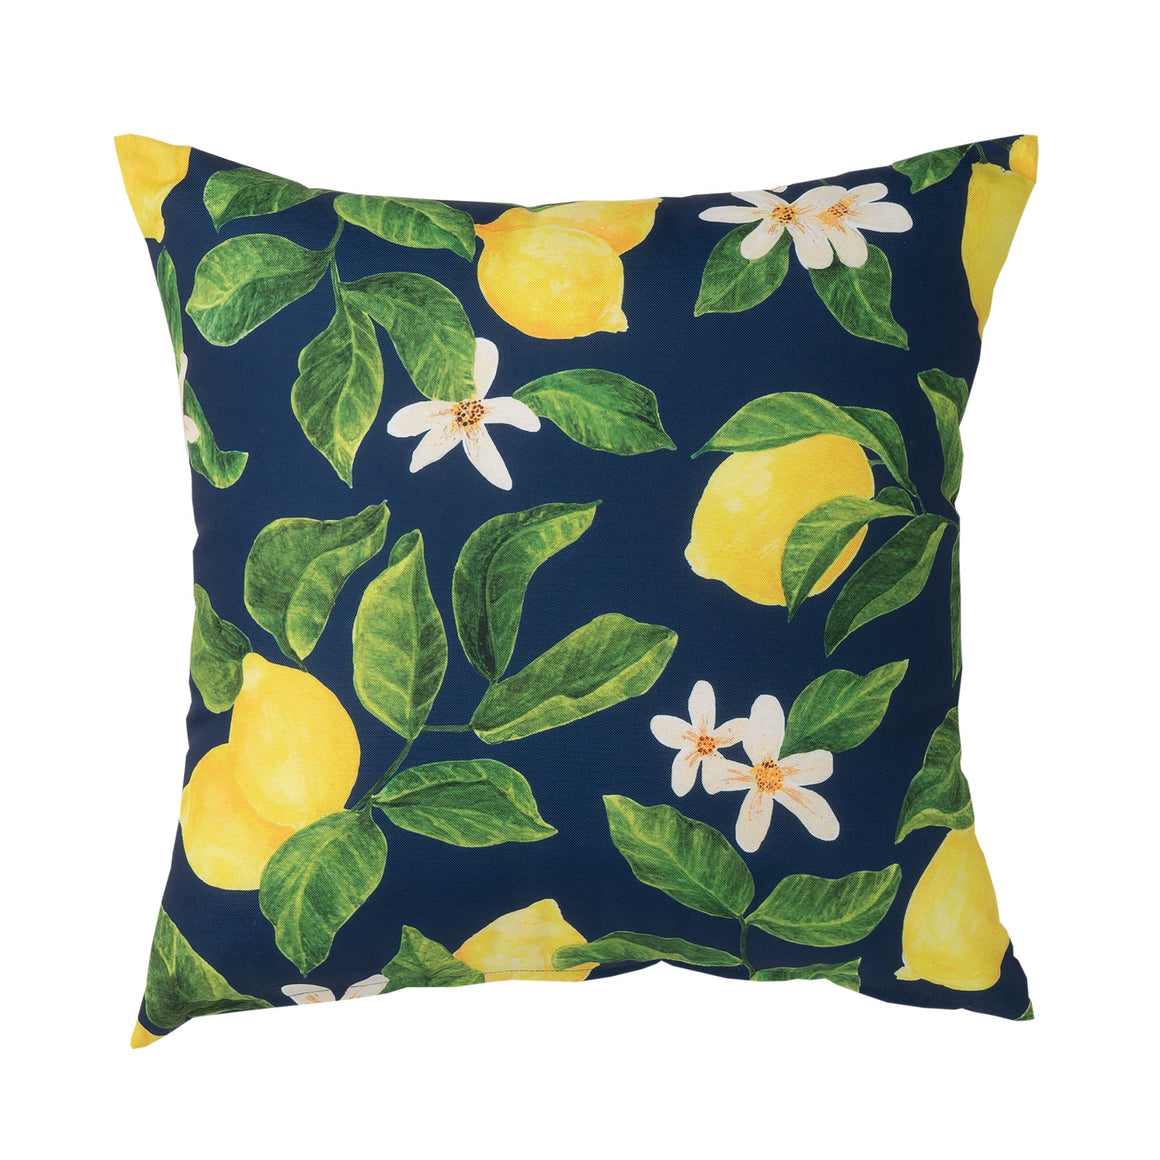 Navy & Lemon Outdoor Cushion